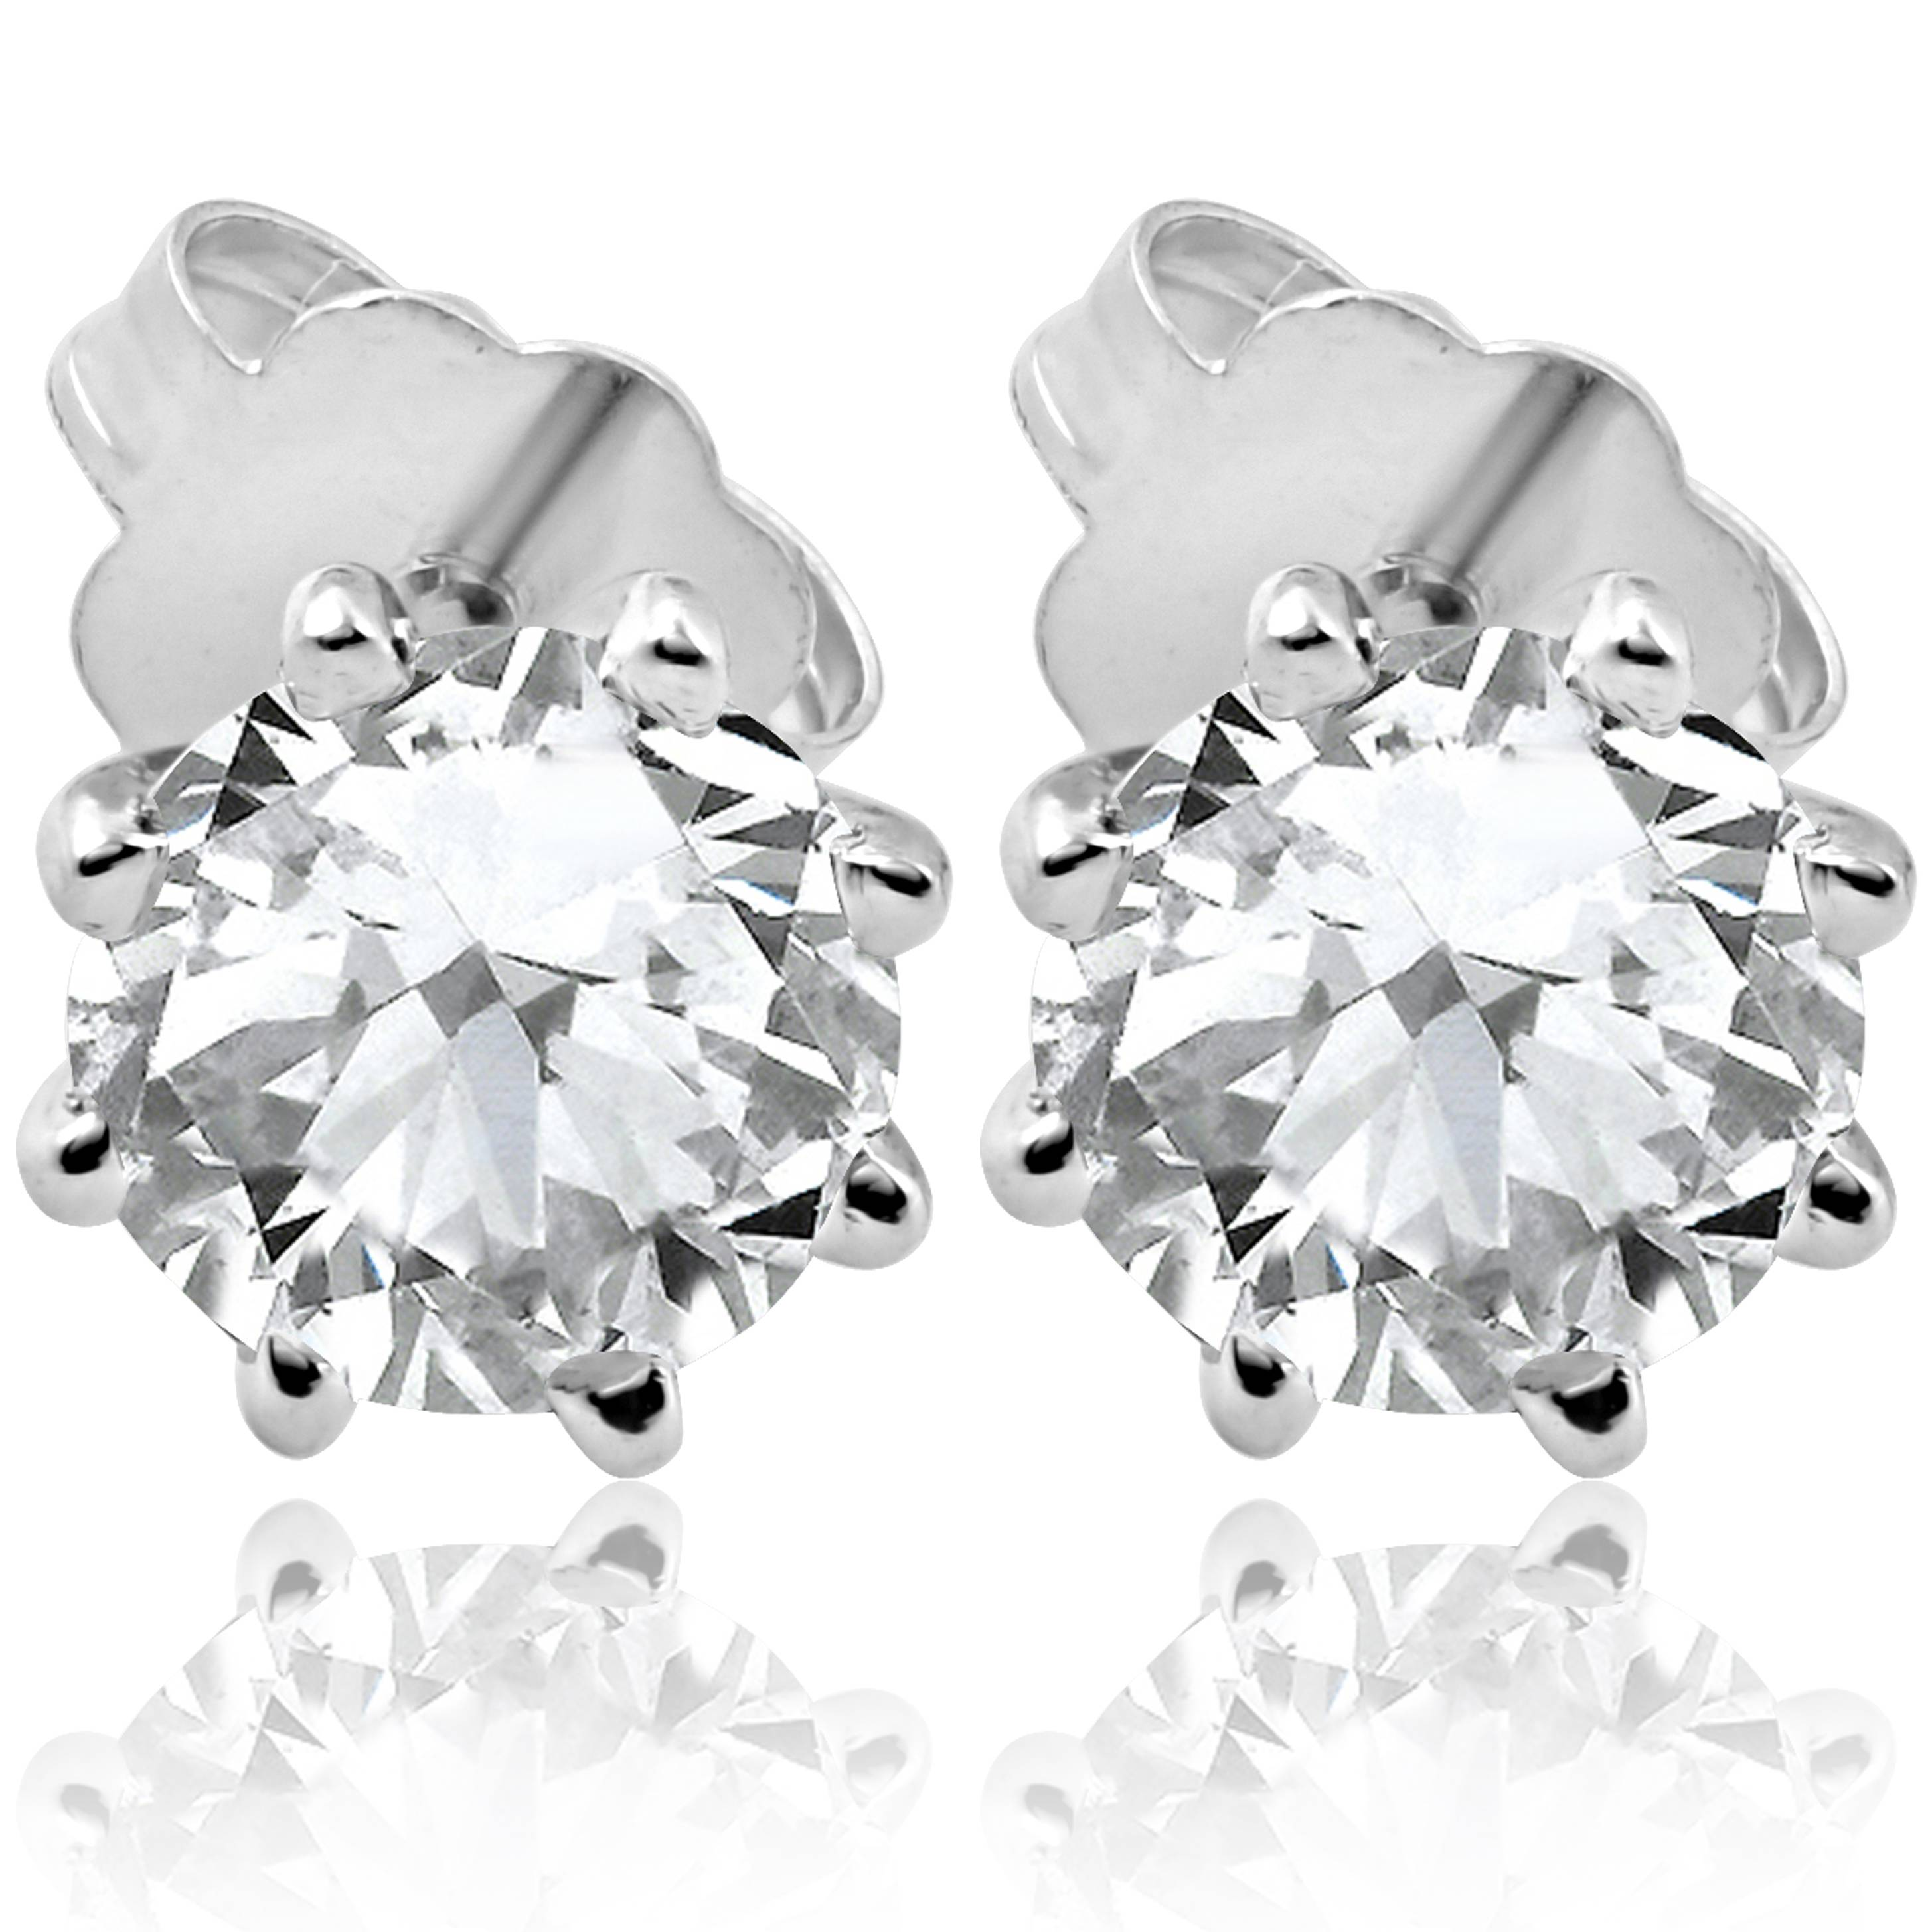 2be0b930e Details about F/SI 1.25 ct Solitaire Diamond Stud 8 Prong Earrings 14K  White Gold Enhanced